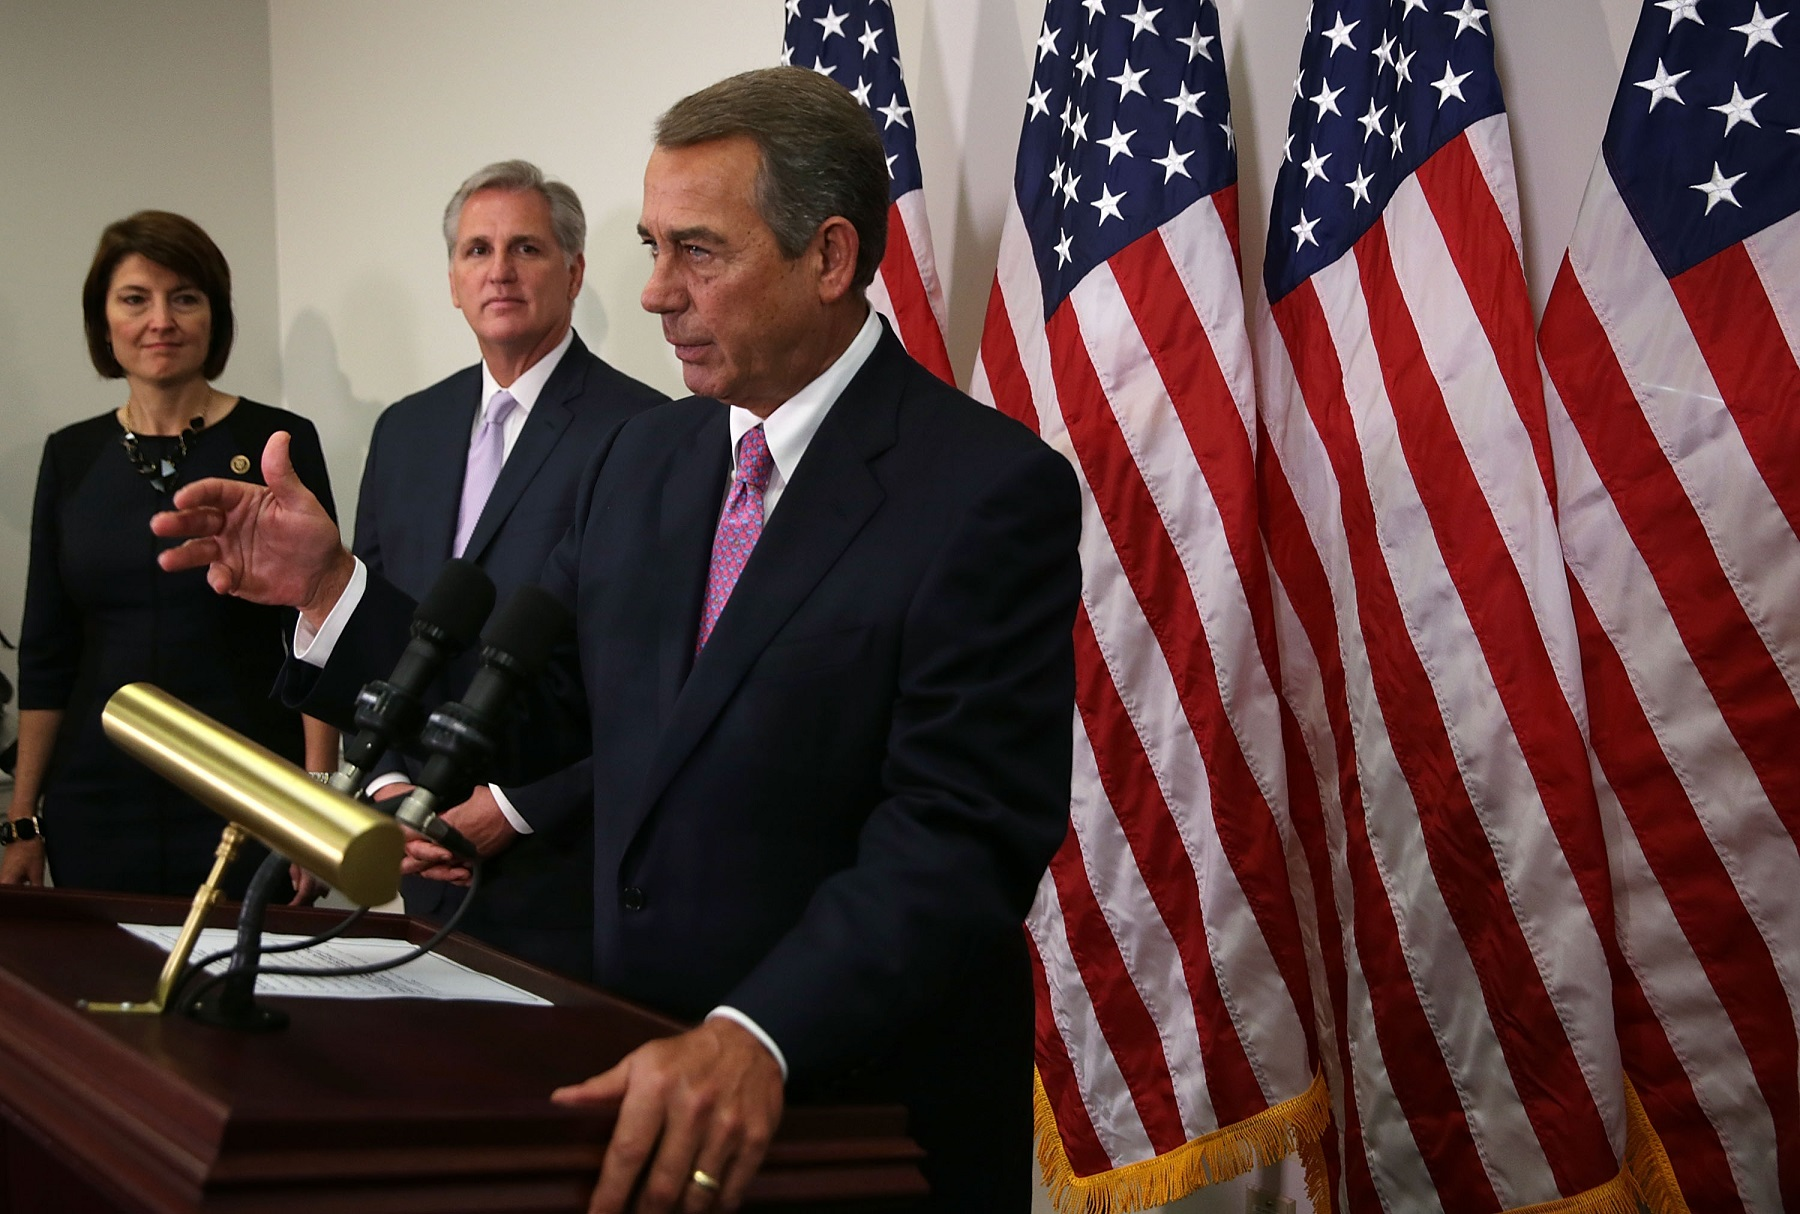 U.S. Speaker of the House Rep. John Boehner (R-OH) (R) speaks as House Majority Leader Rep. Kevin McCarthy (R-CA) (2nd L) and Rep. Cathy McMorris Rodgers (R-WA) (L) listen during a news briefing after a House Republican Caucus meeting October 27, 2015 at the Capitol in Washington, DC.